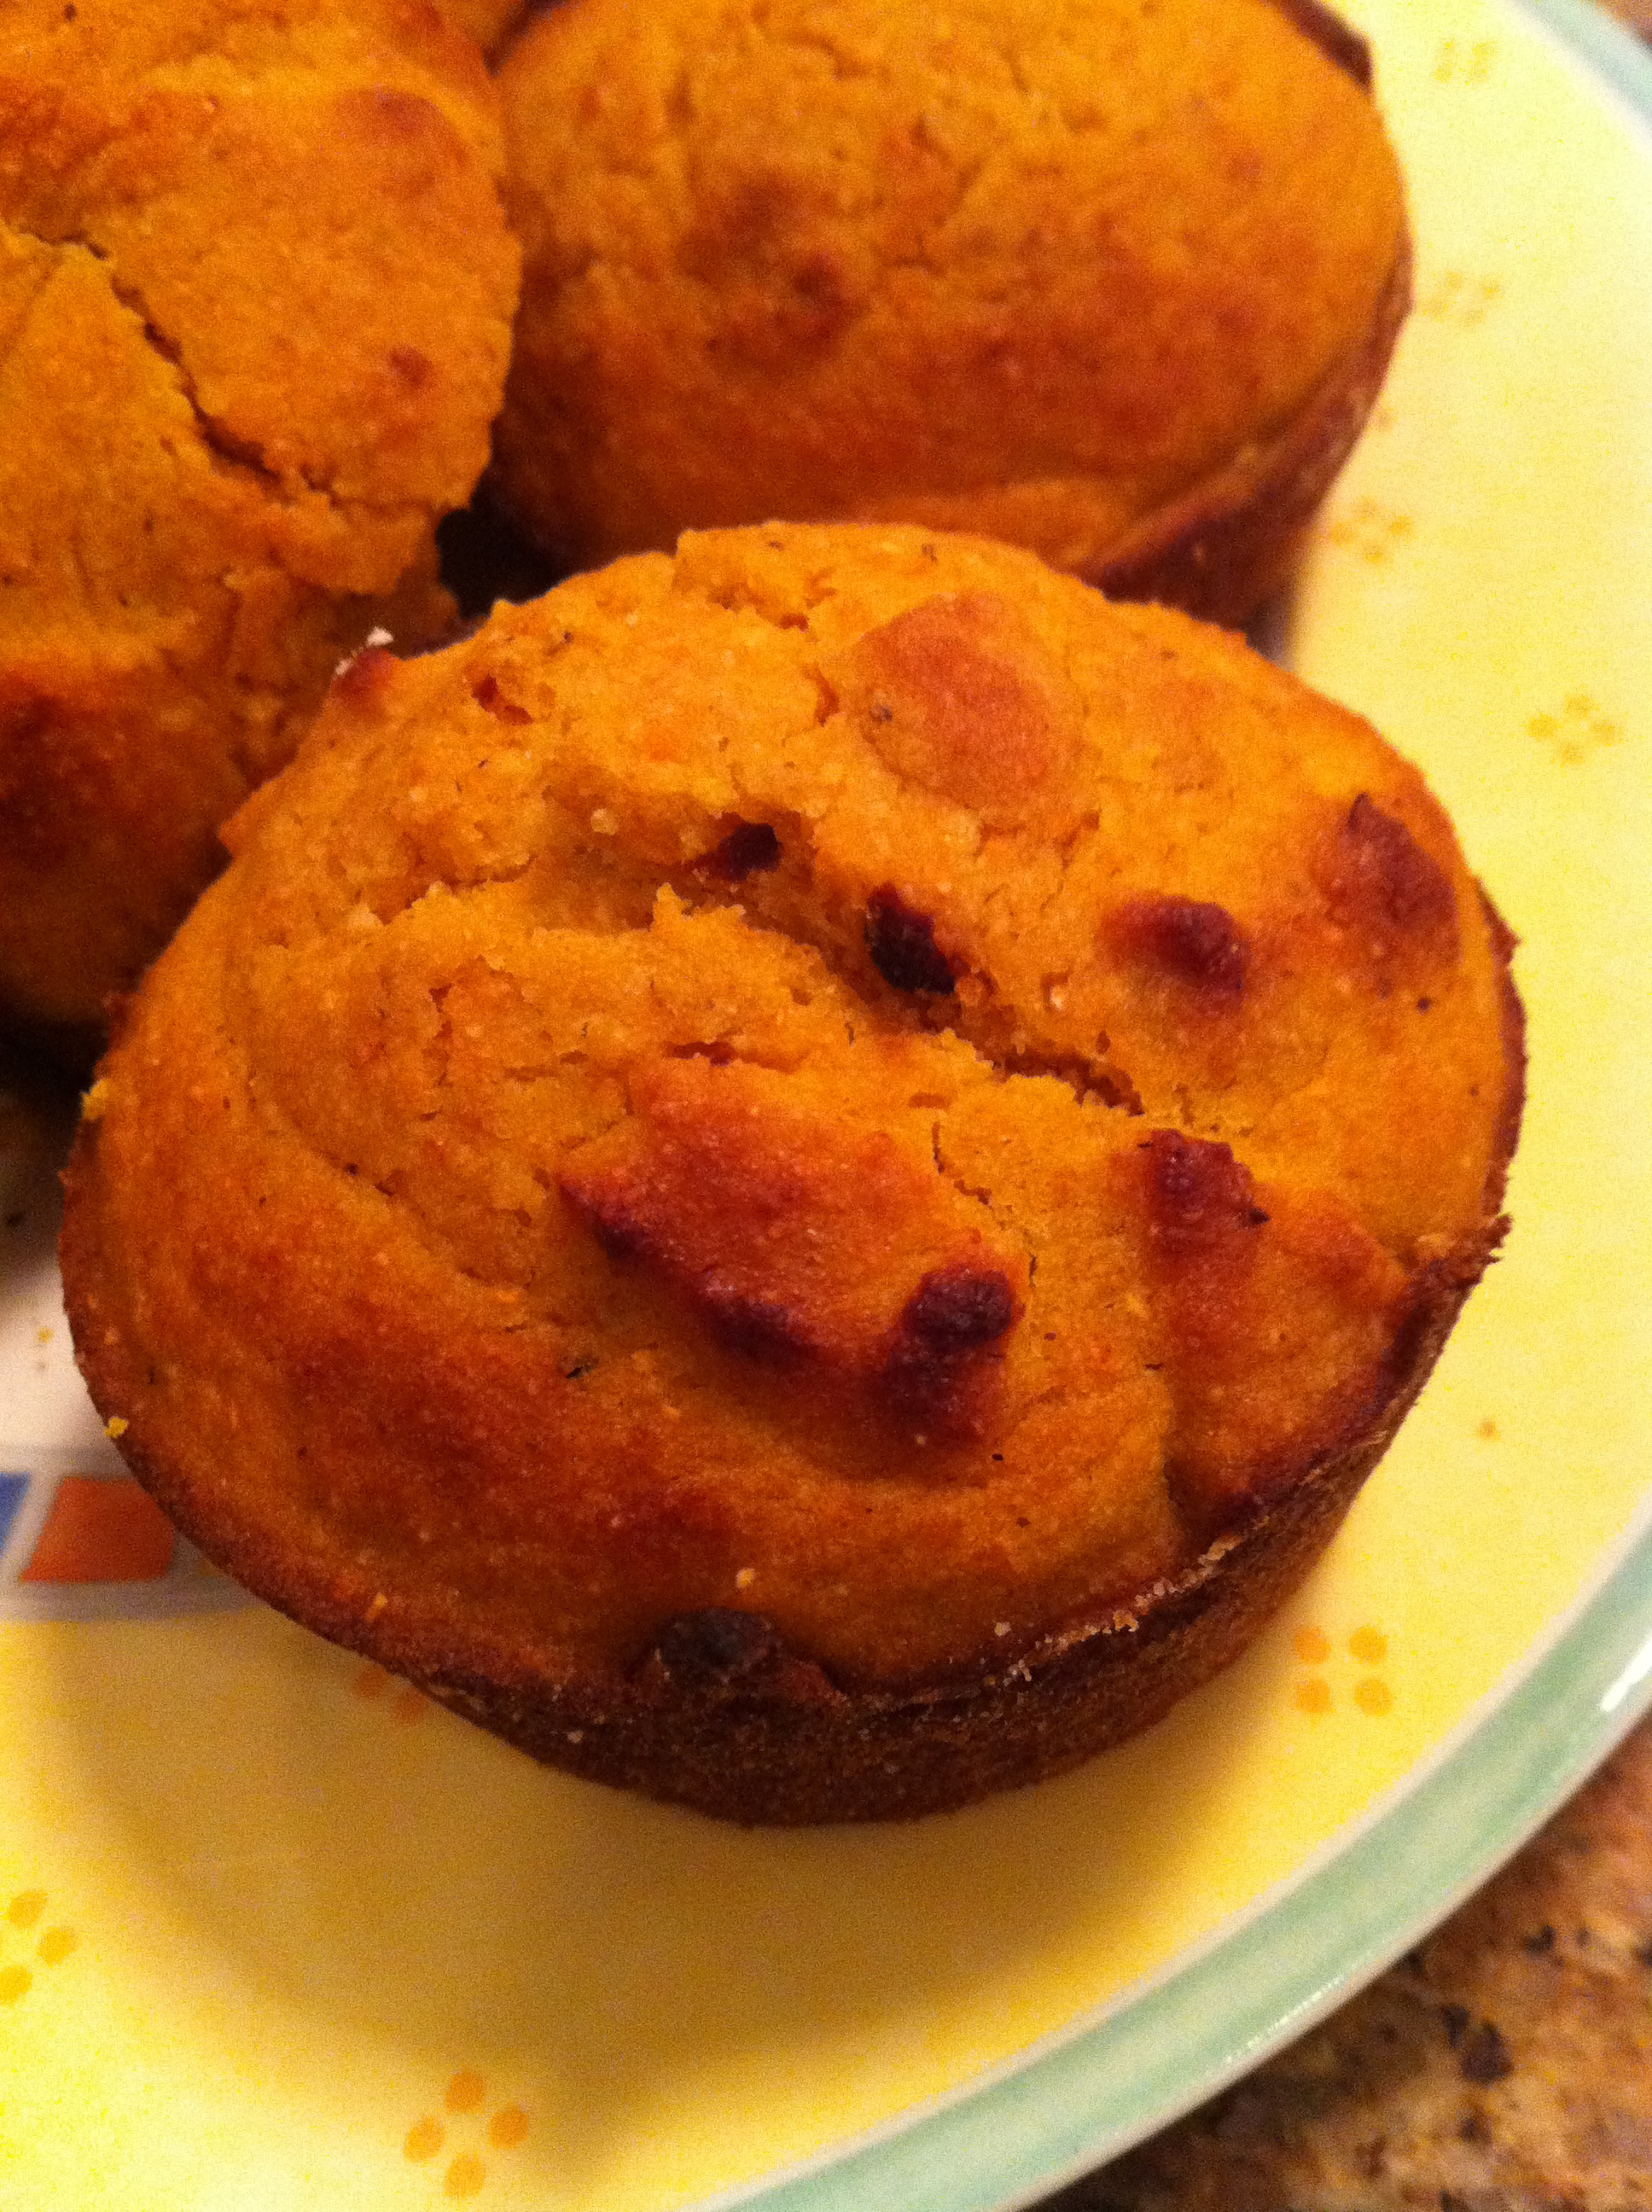 These vegan pumpkin corn muffins were delicious, moist, and perfect to eat with vegan chili.